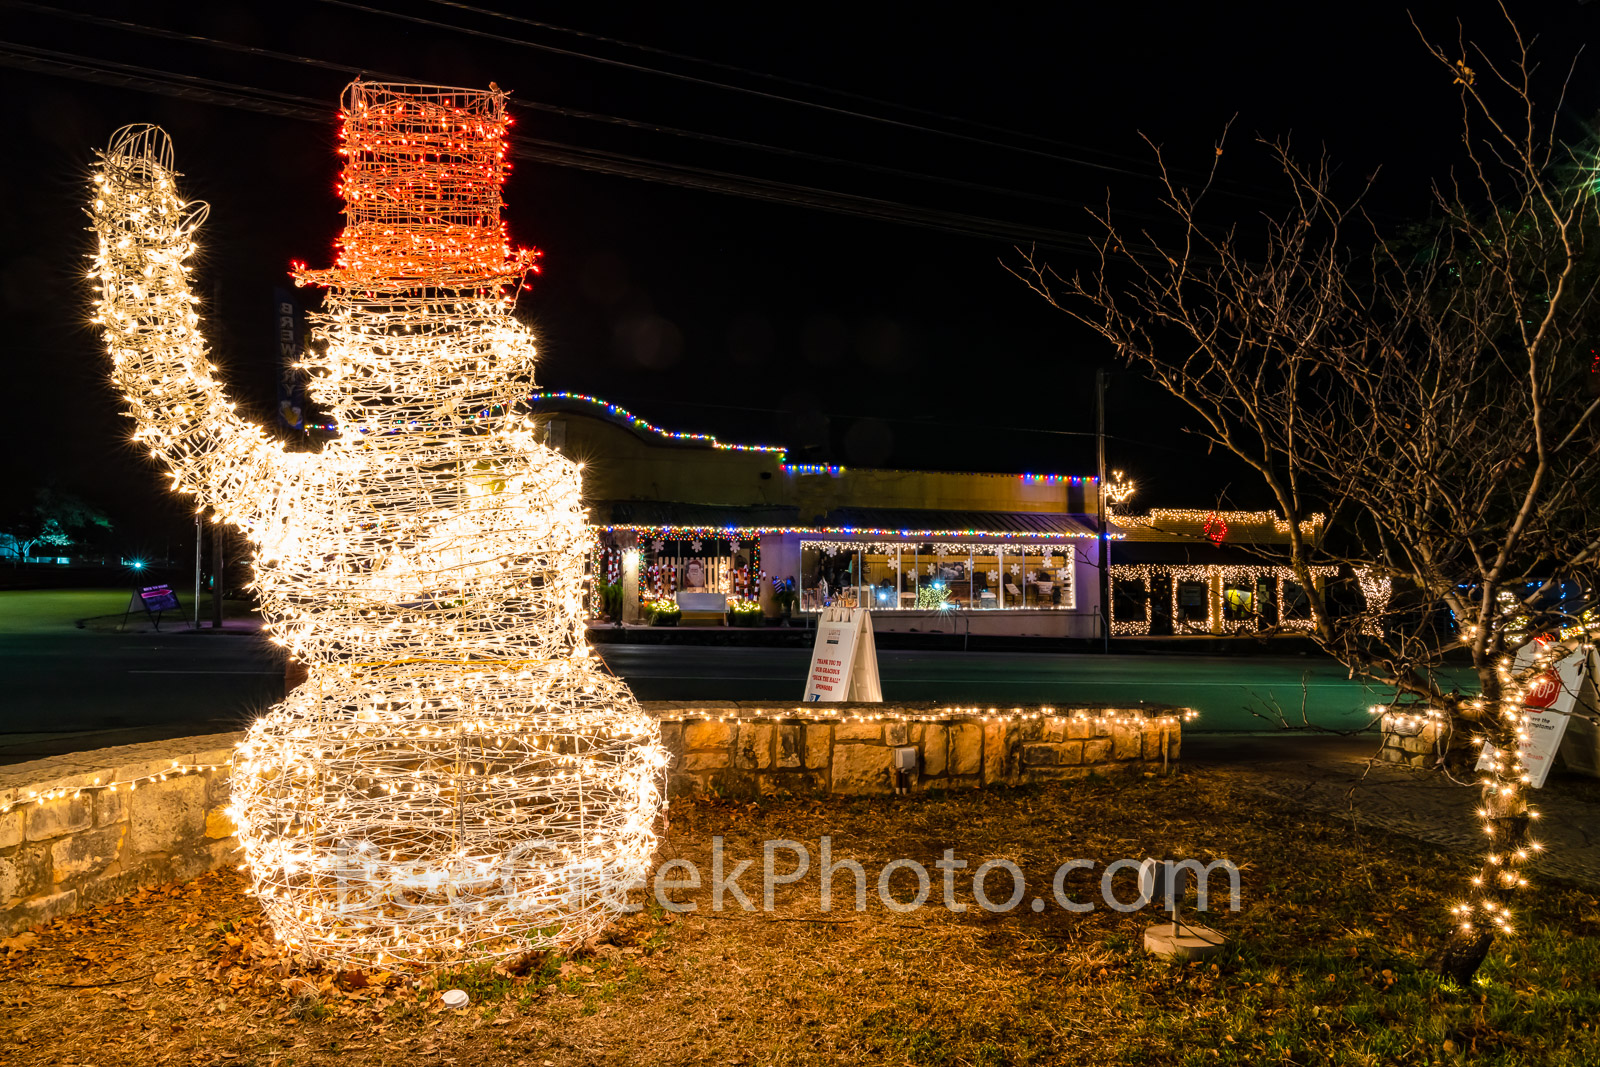 Johnson City Snowman Wave - The Snowman Waves as traffic flows through 290 through the downtown area of Johnson City Texas at...